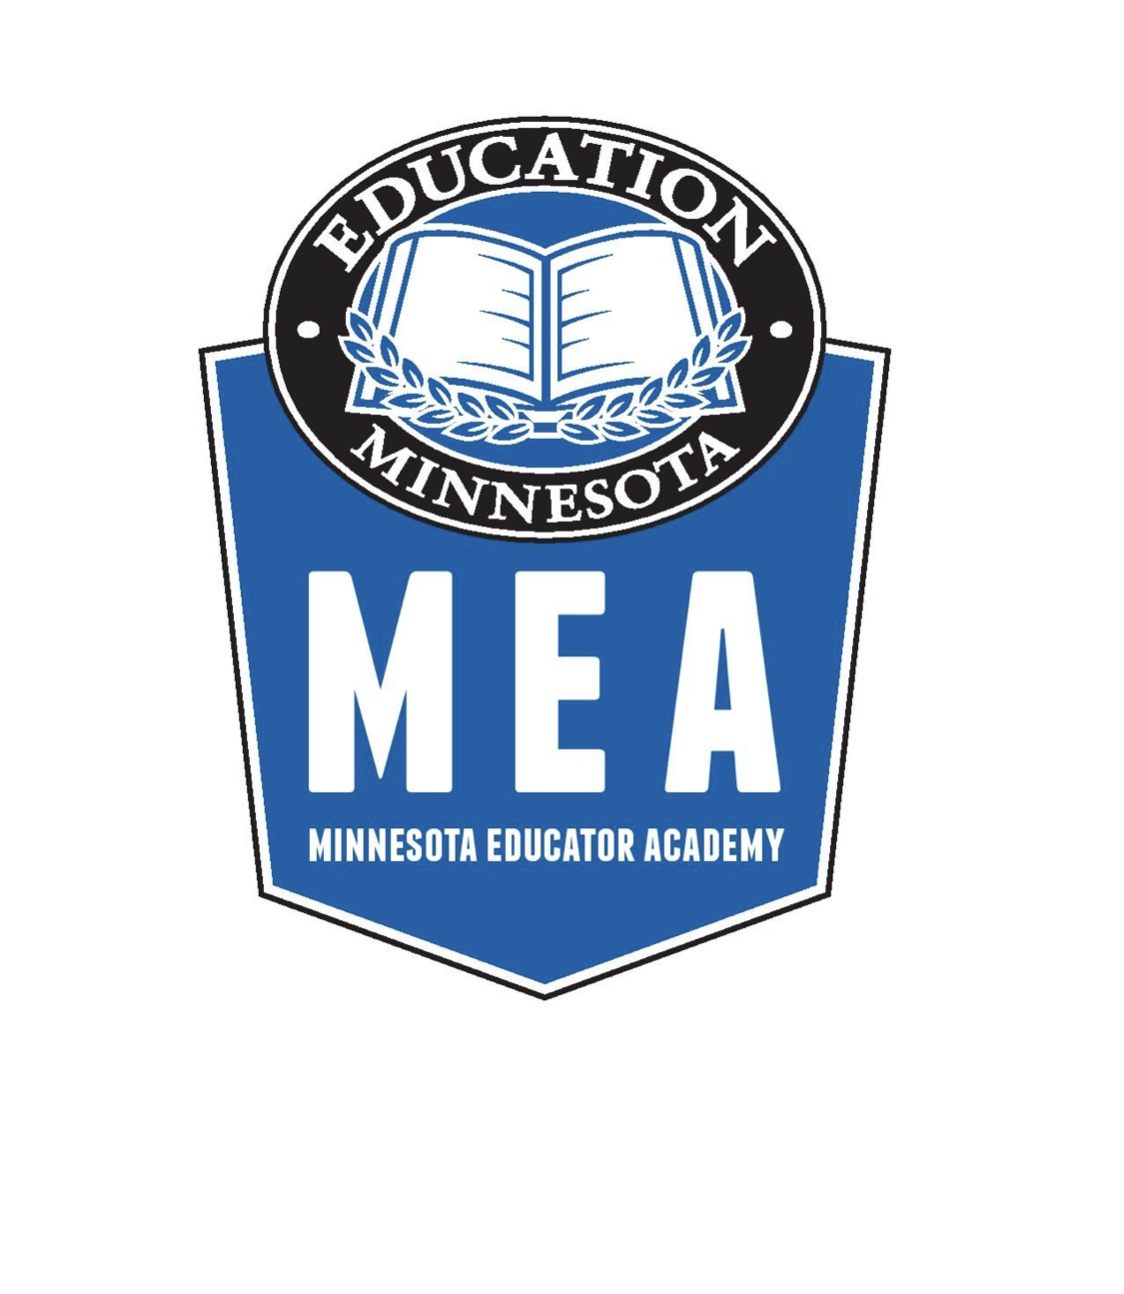 MEA has transformed from MN Education Association to MN Educator Academy